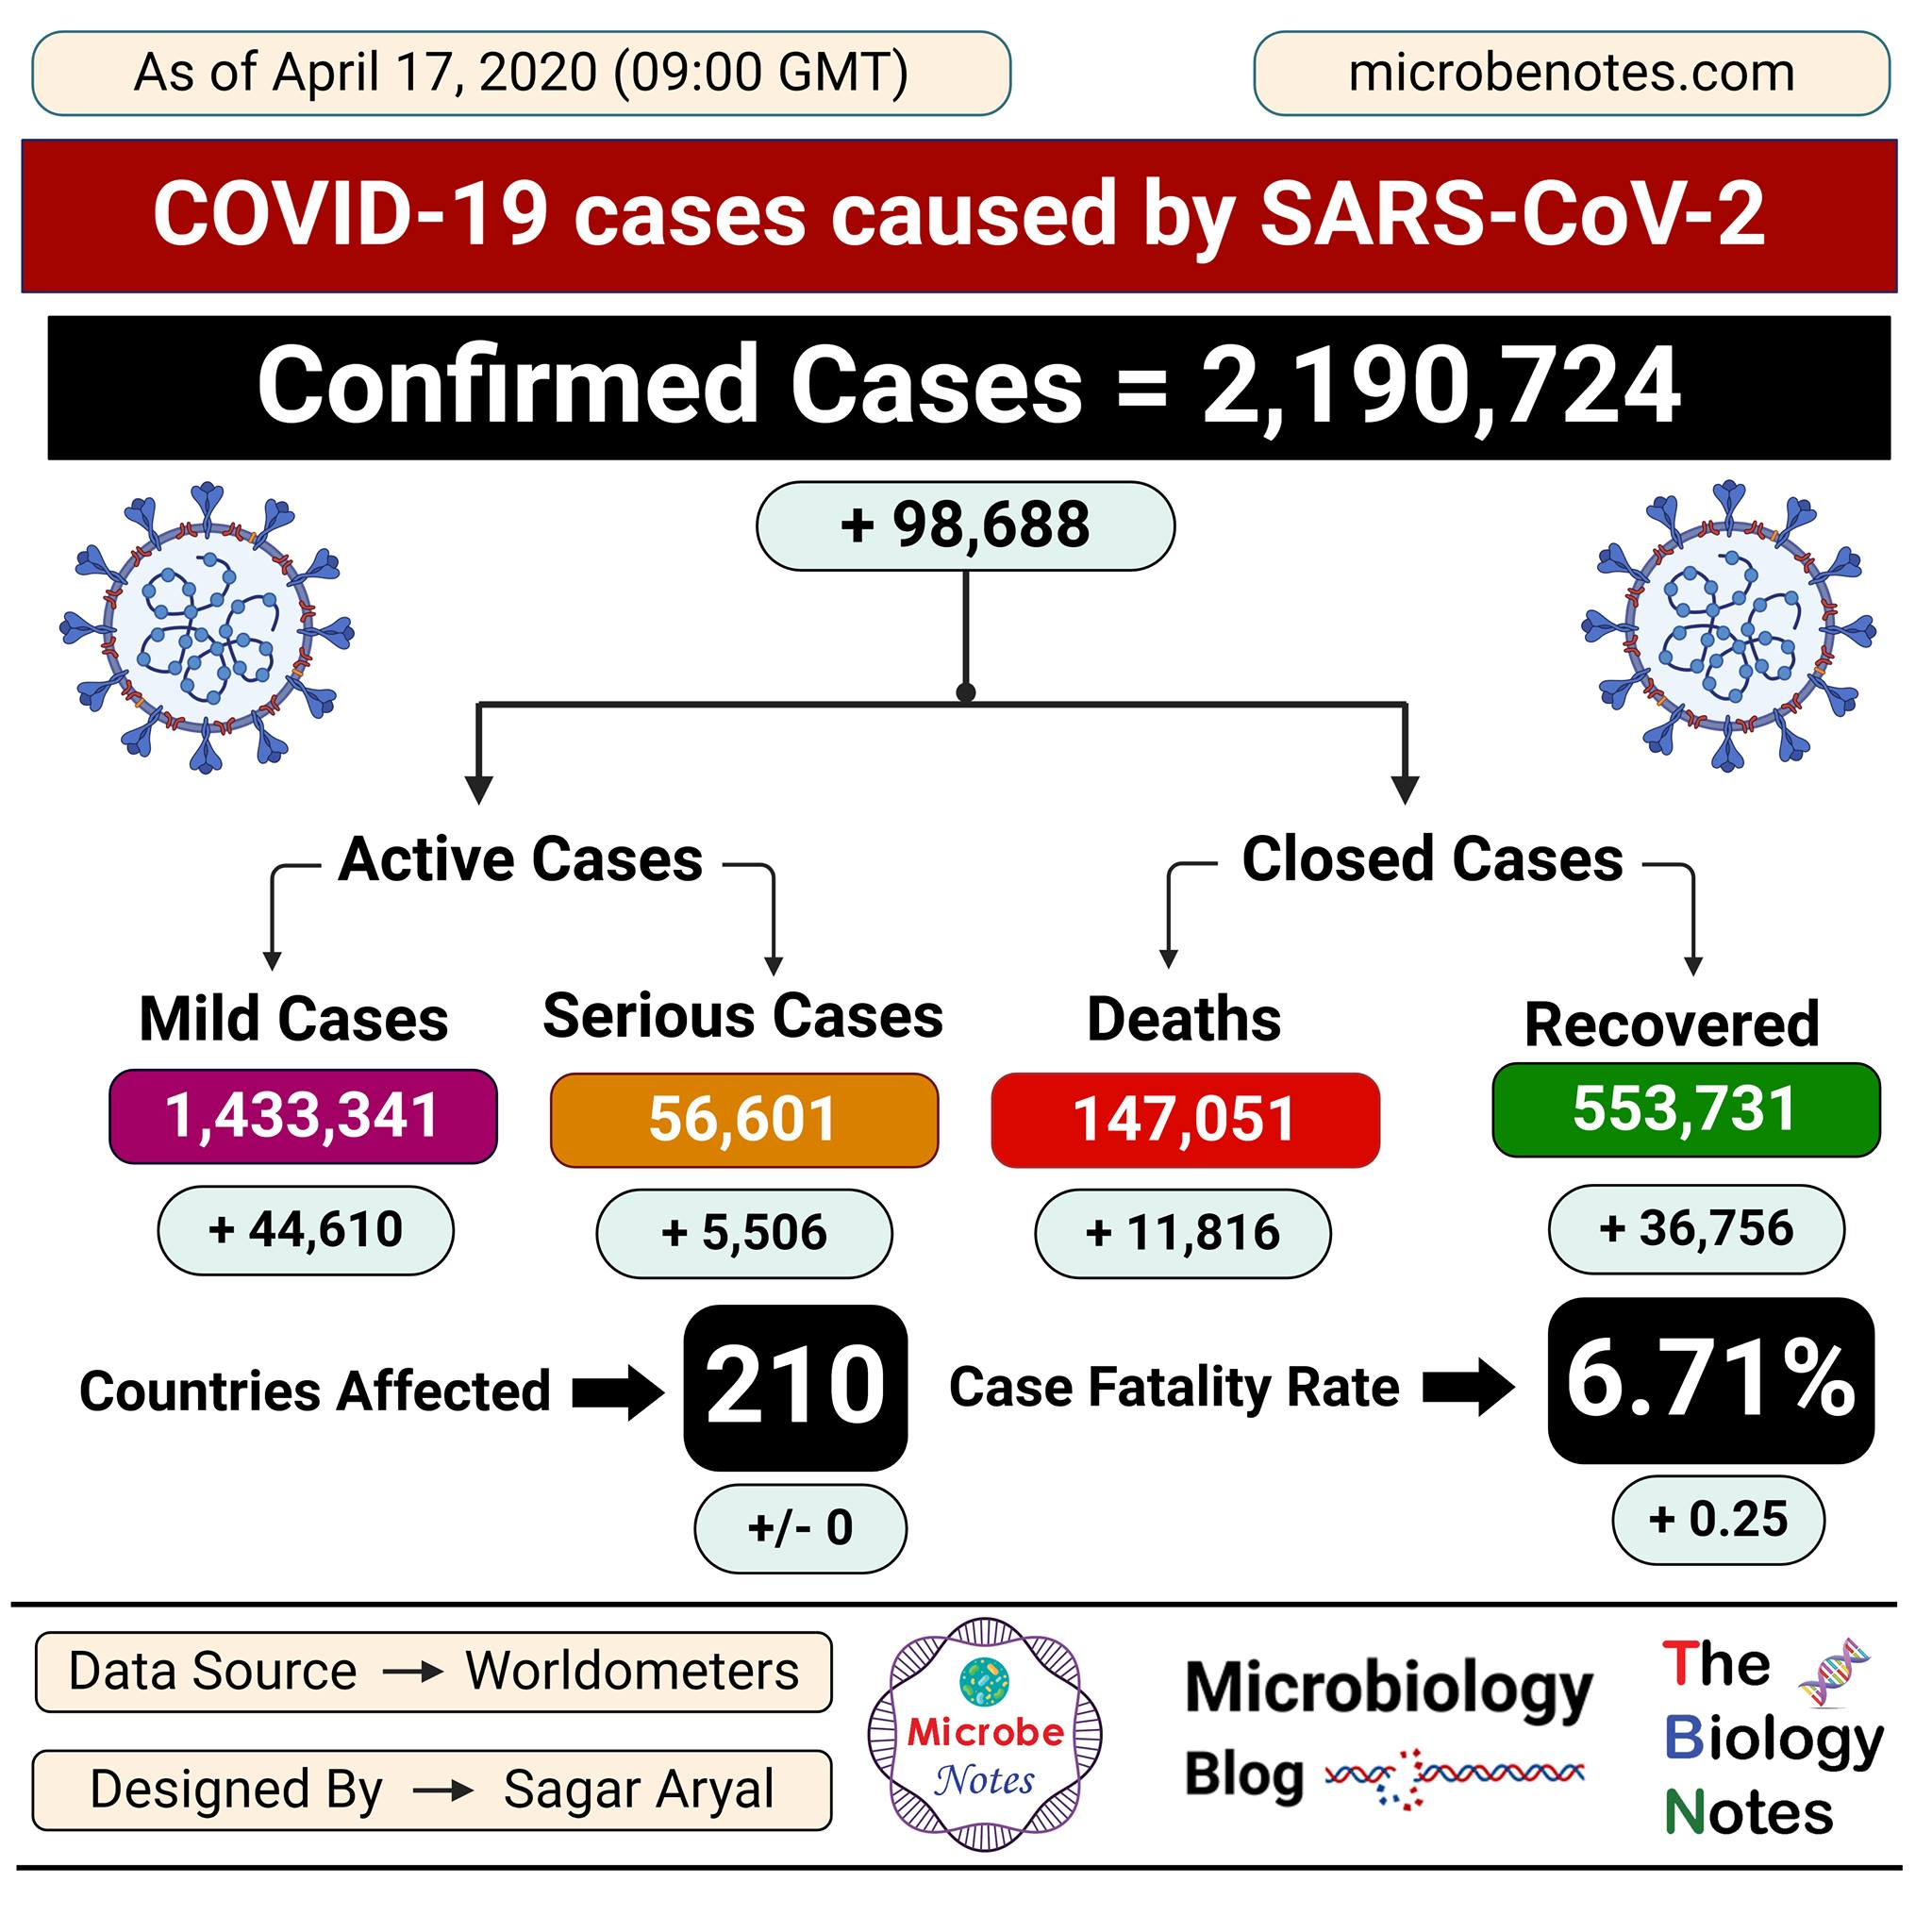 Epidemiology of COVID-19 caused by SARS-CoV-2 as of April 17, 2020